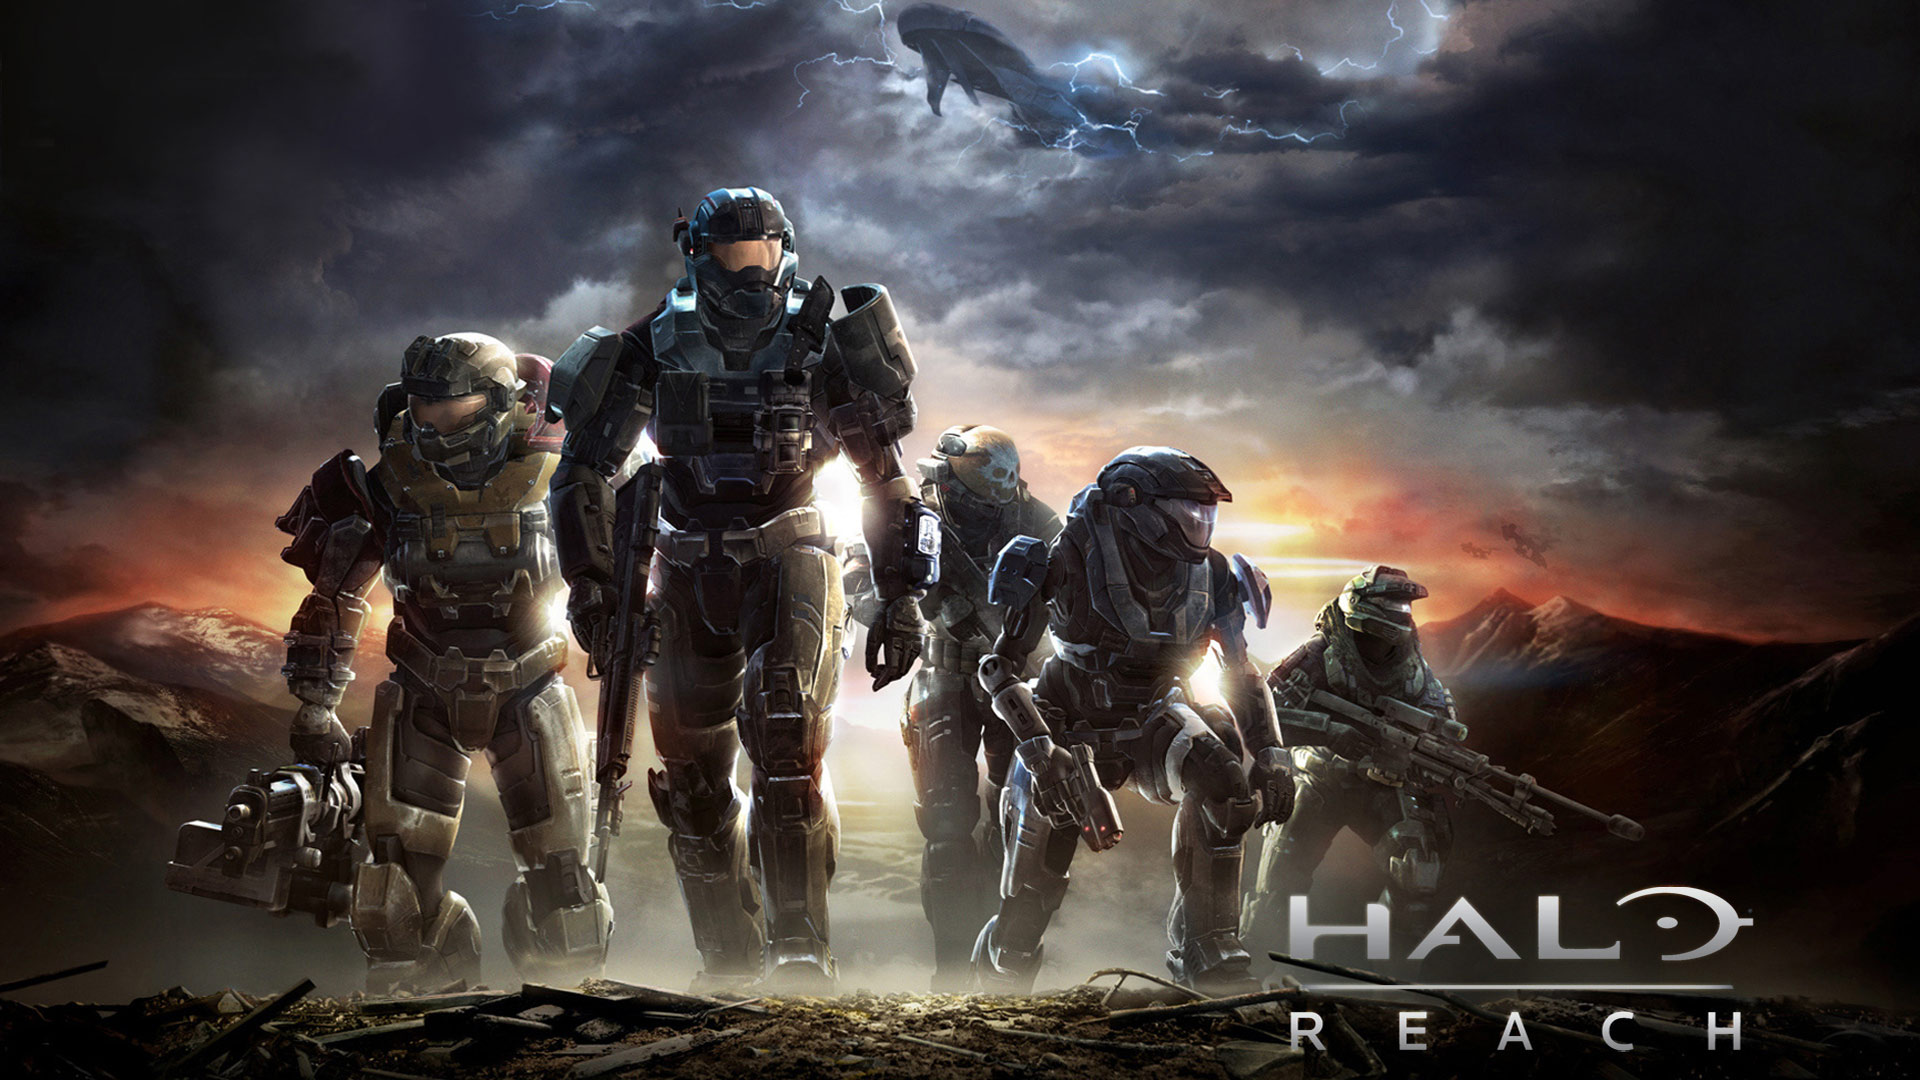 Halo Reach Wallpaper Xbox One